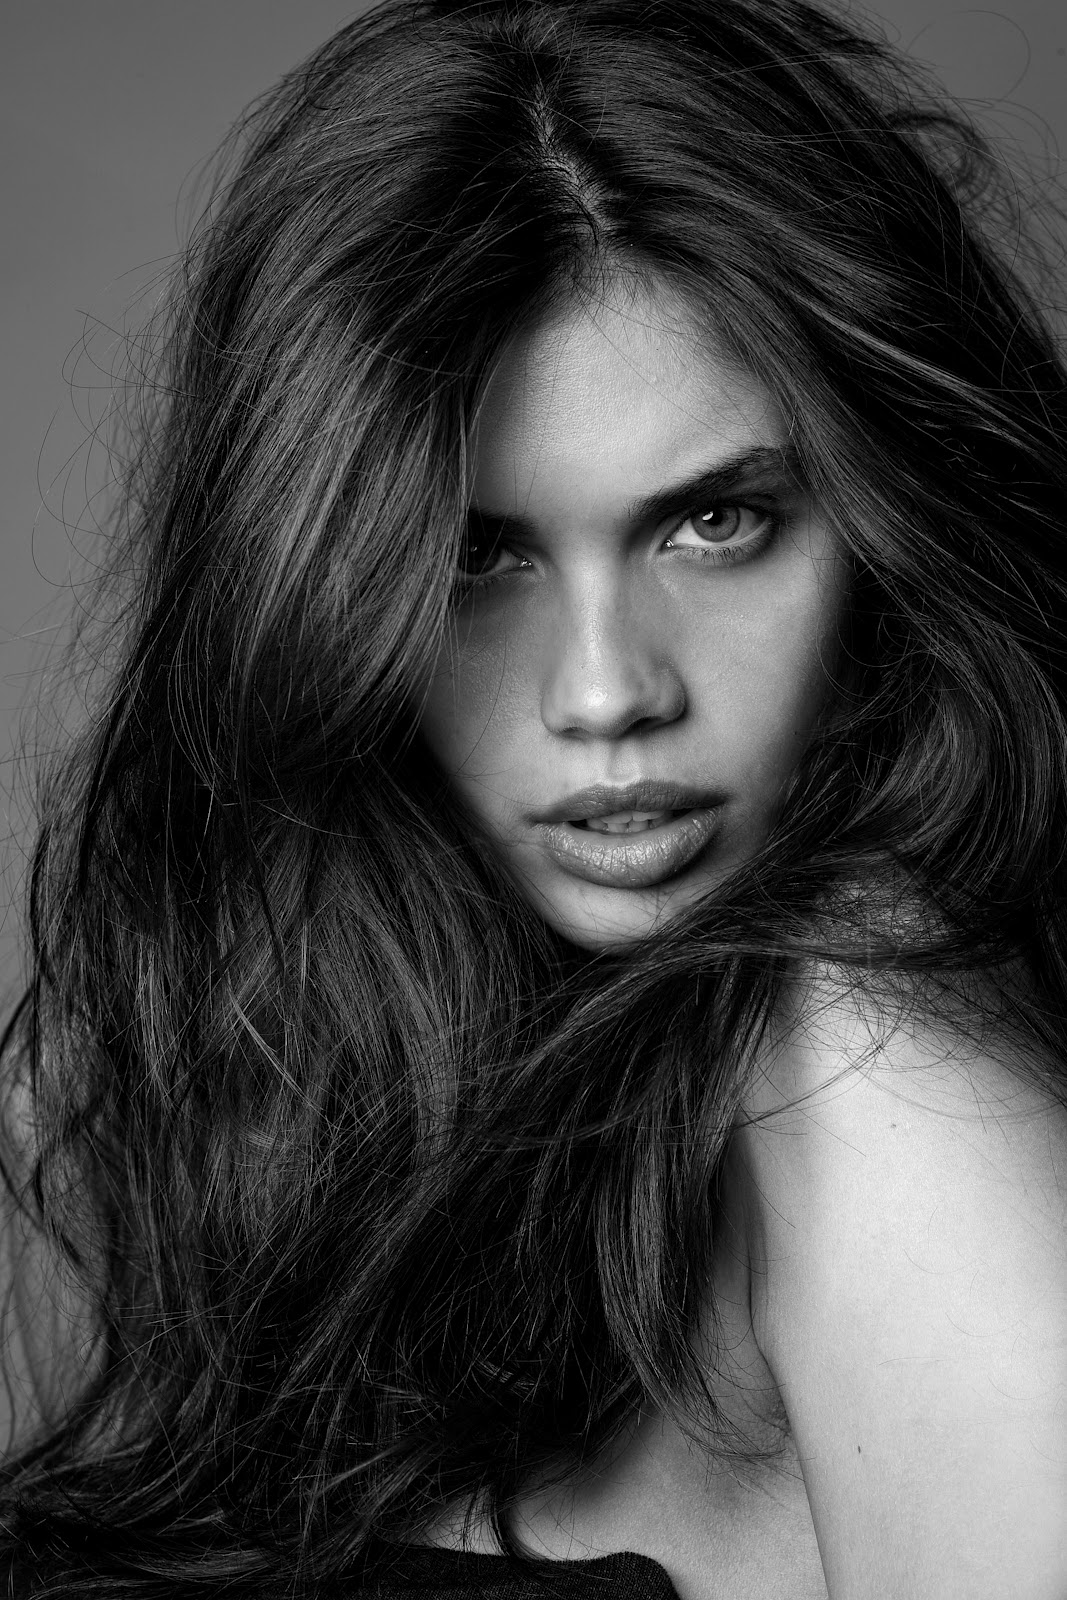 Don T Fall In Love Wallpaper Sara Sampaio By Ken Pao 2011 Hq Portraits Models